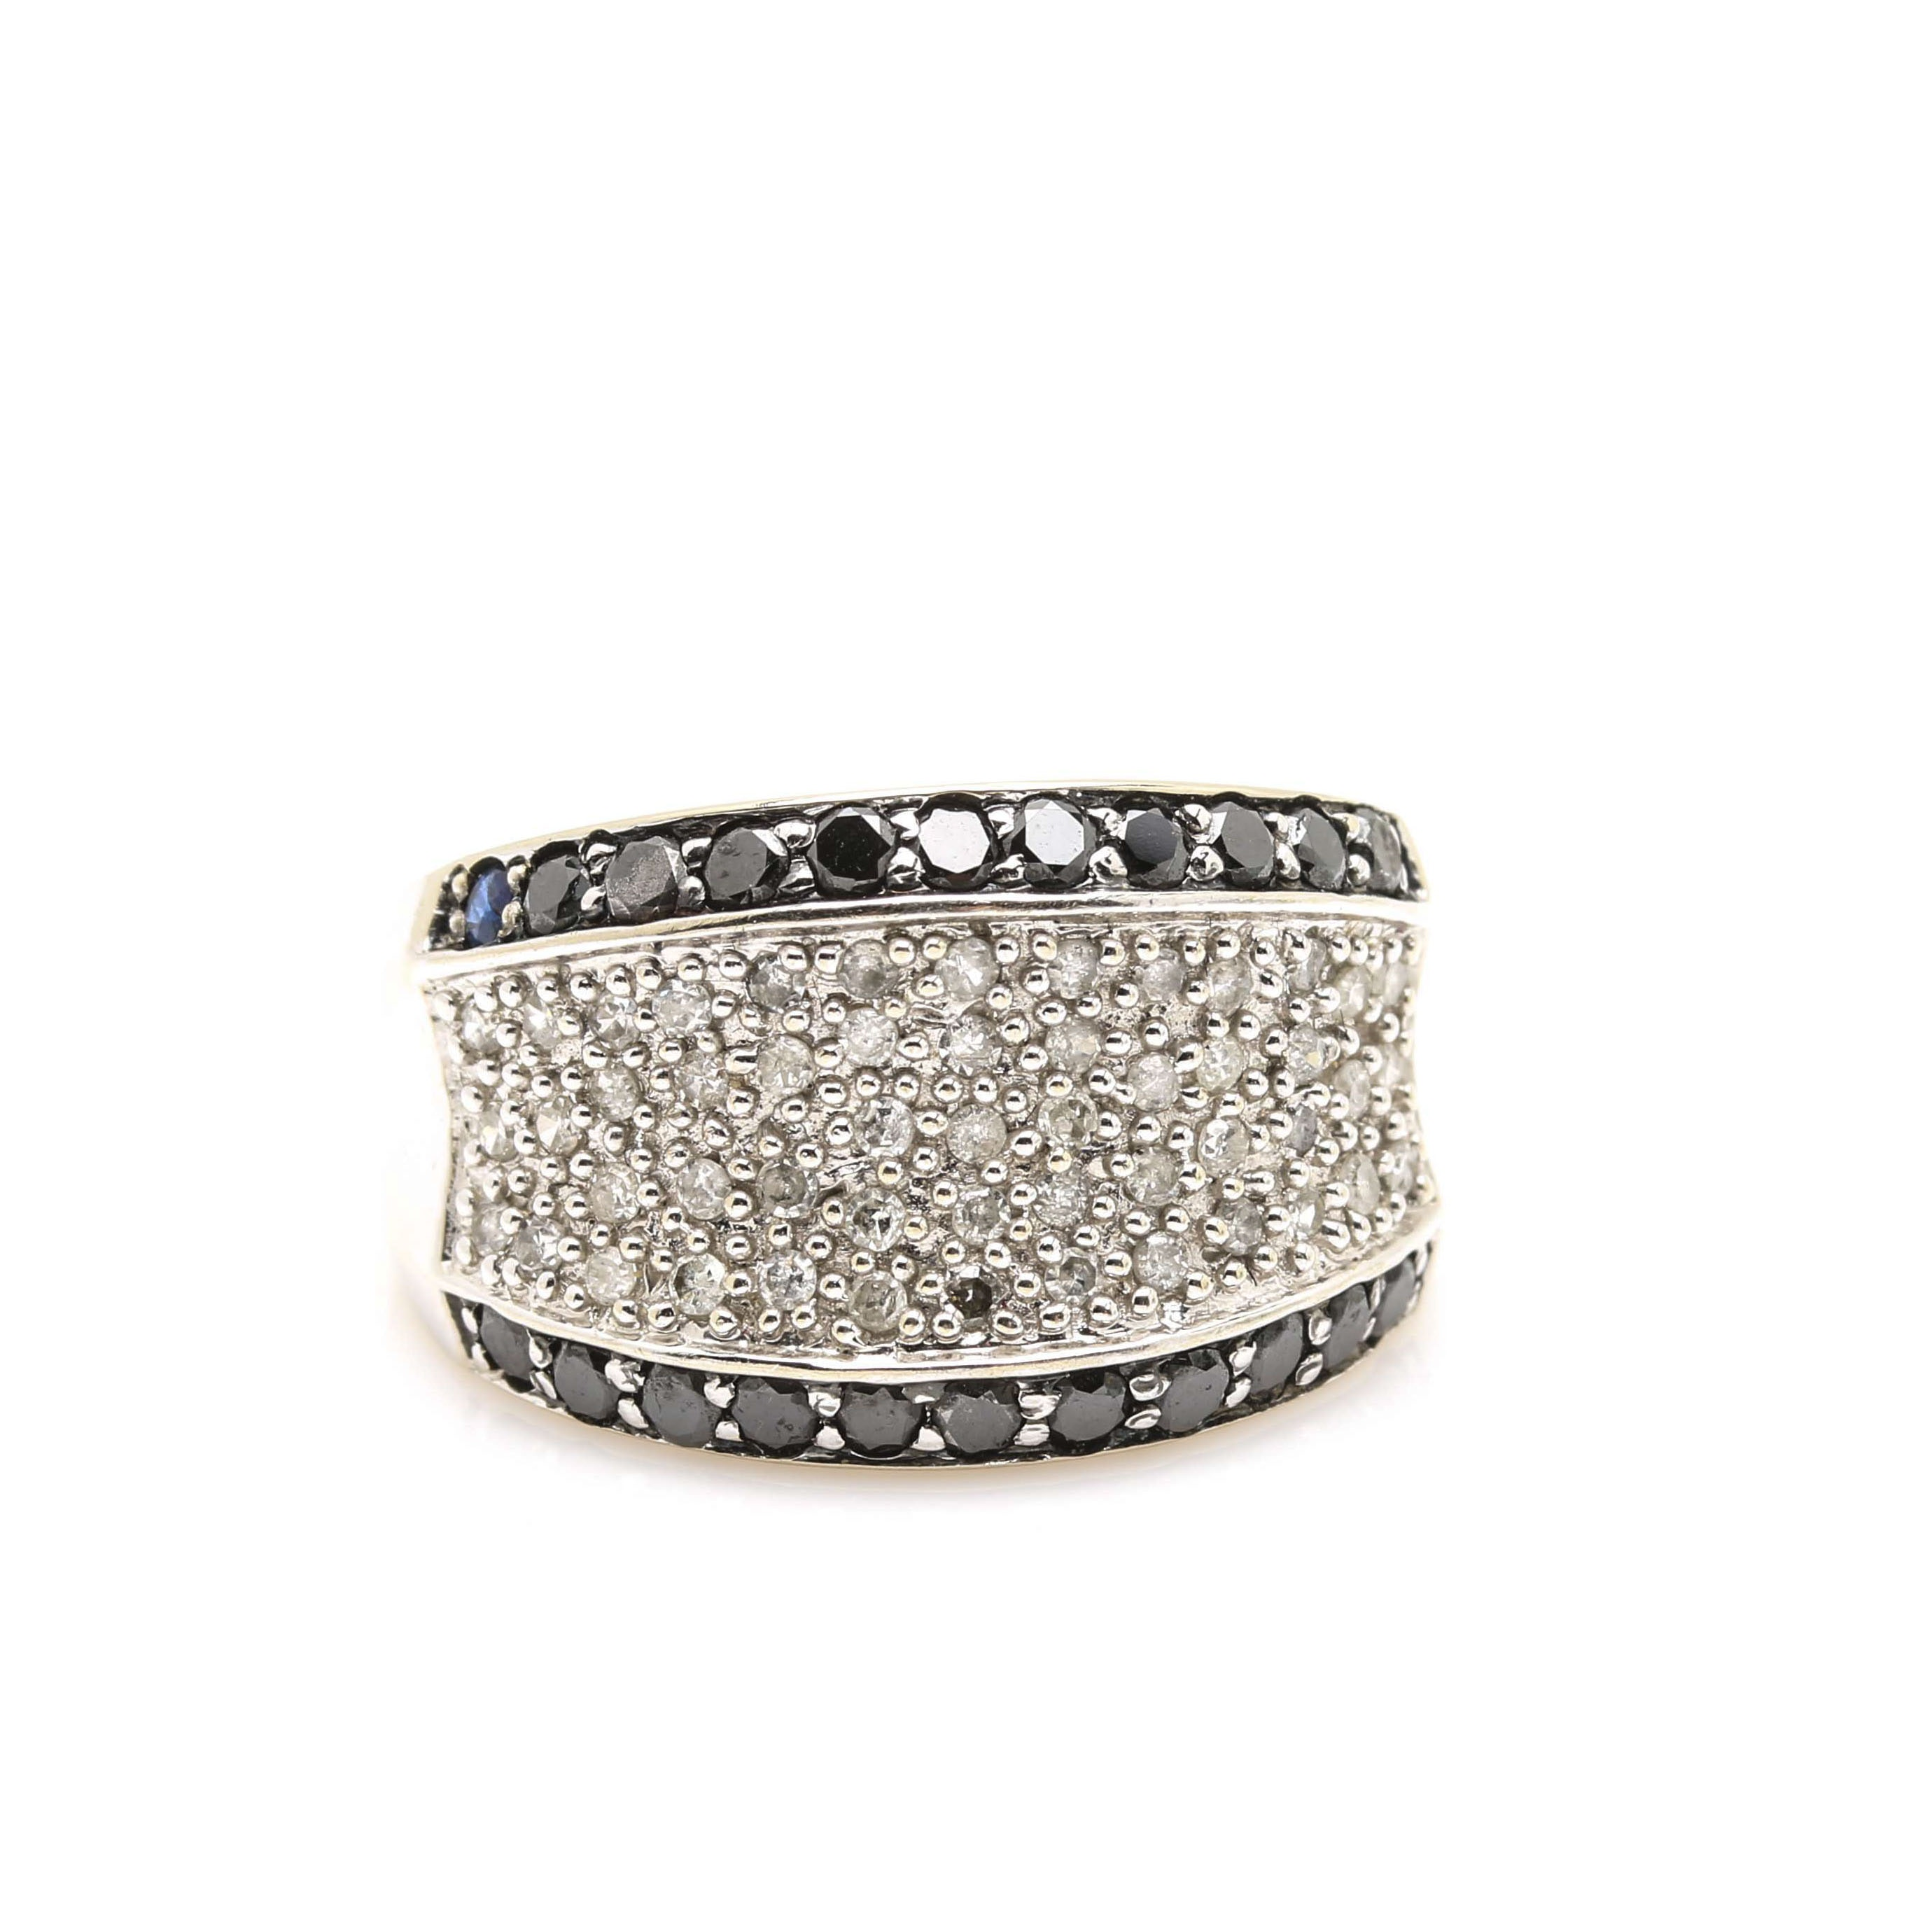 10K White Gold Diamond Dome Ring